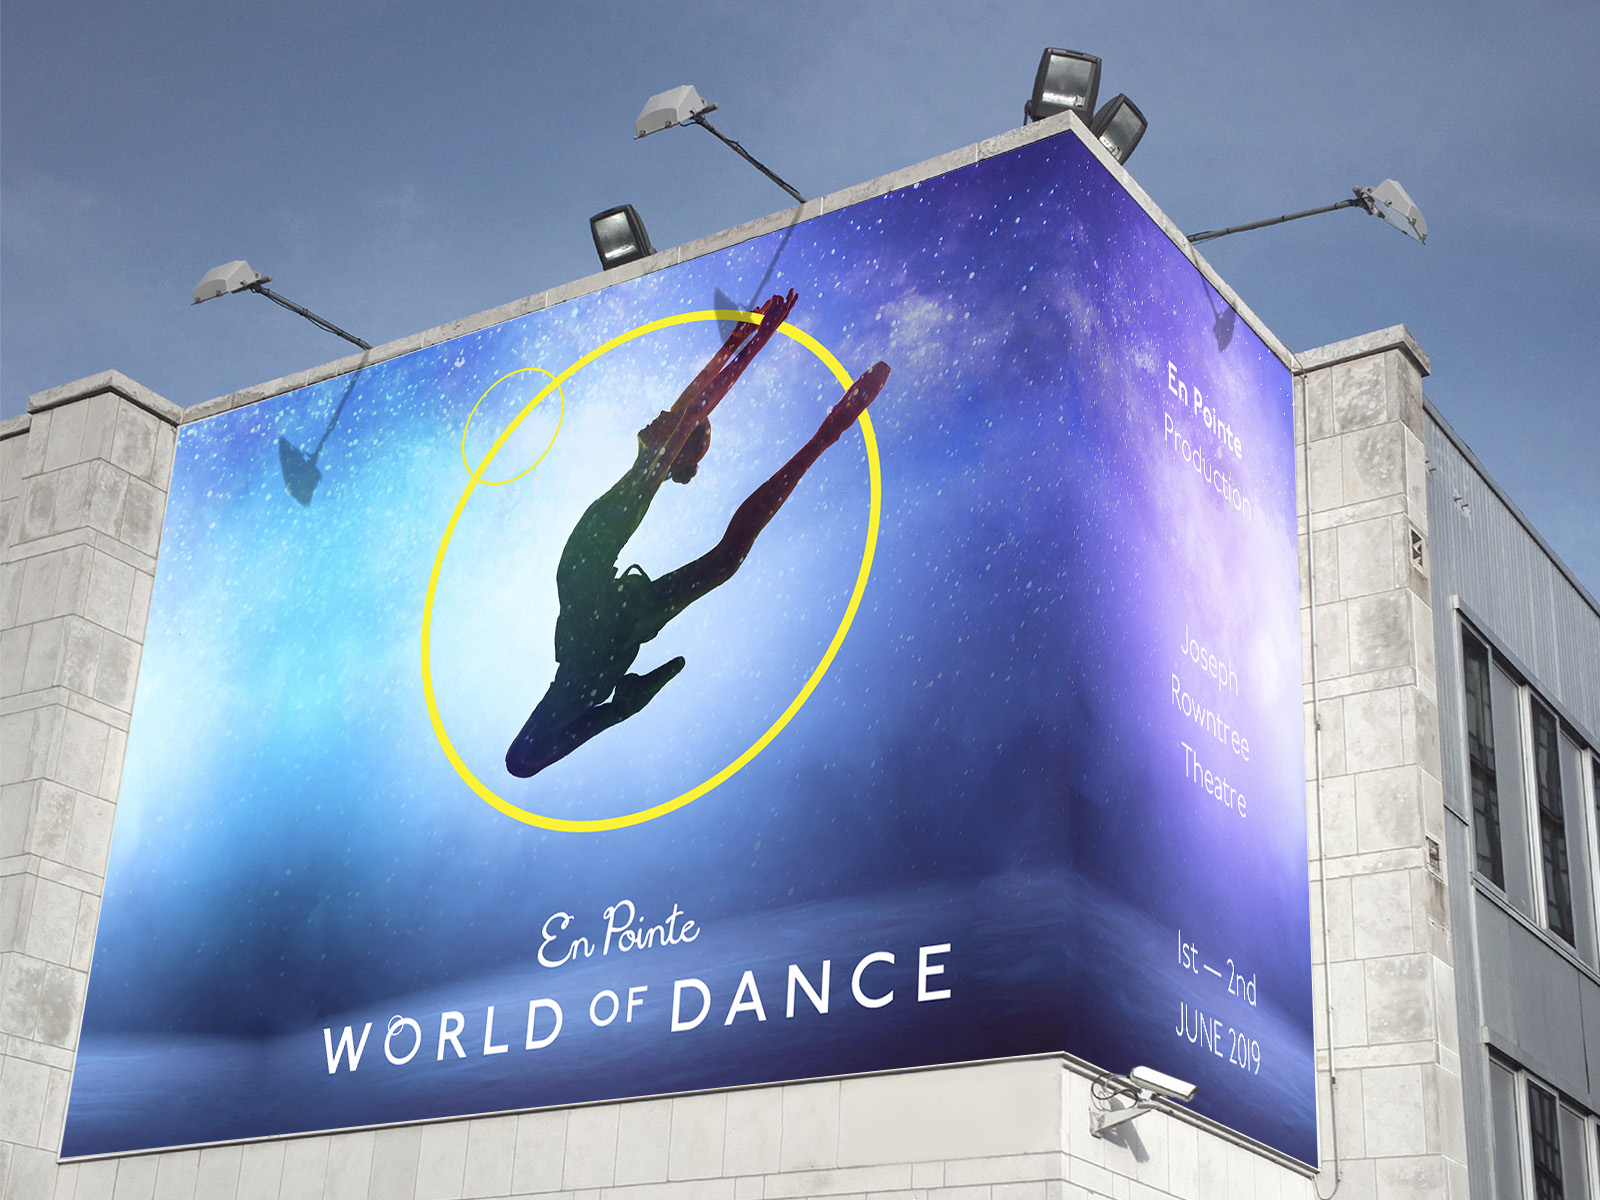 World of Dance 2019 an En Pointe Show at York's Joseph Rowntree Theatre